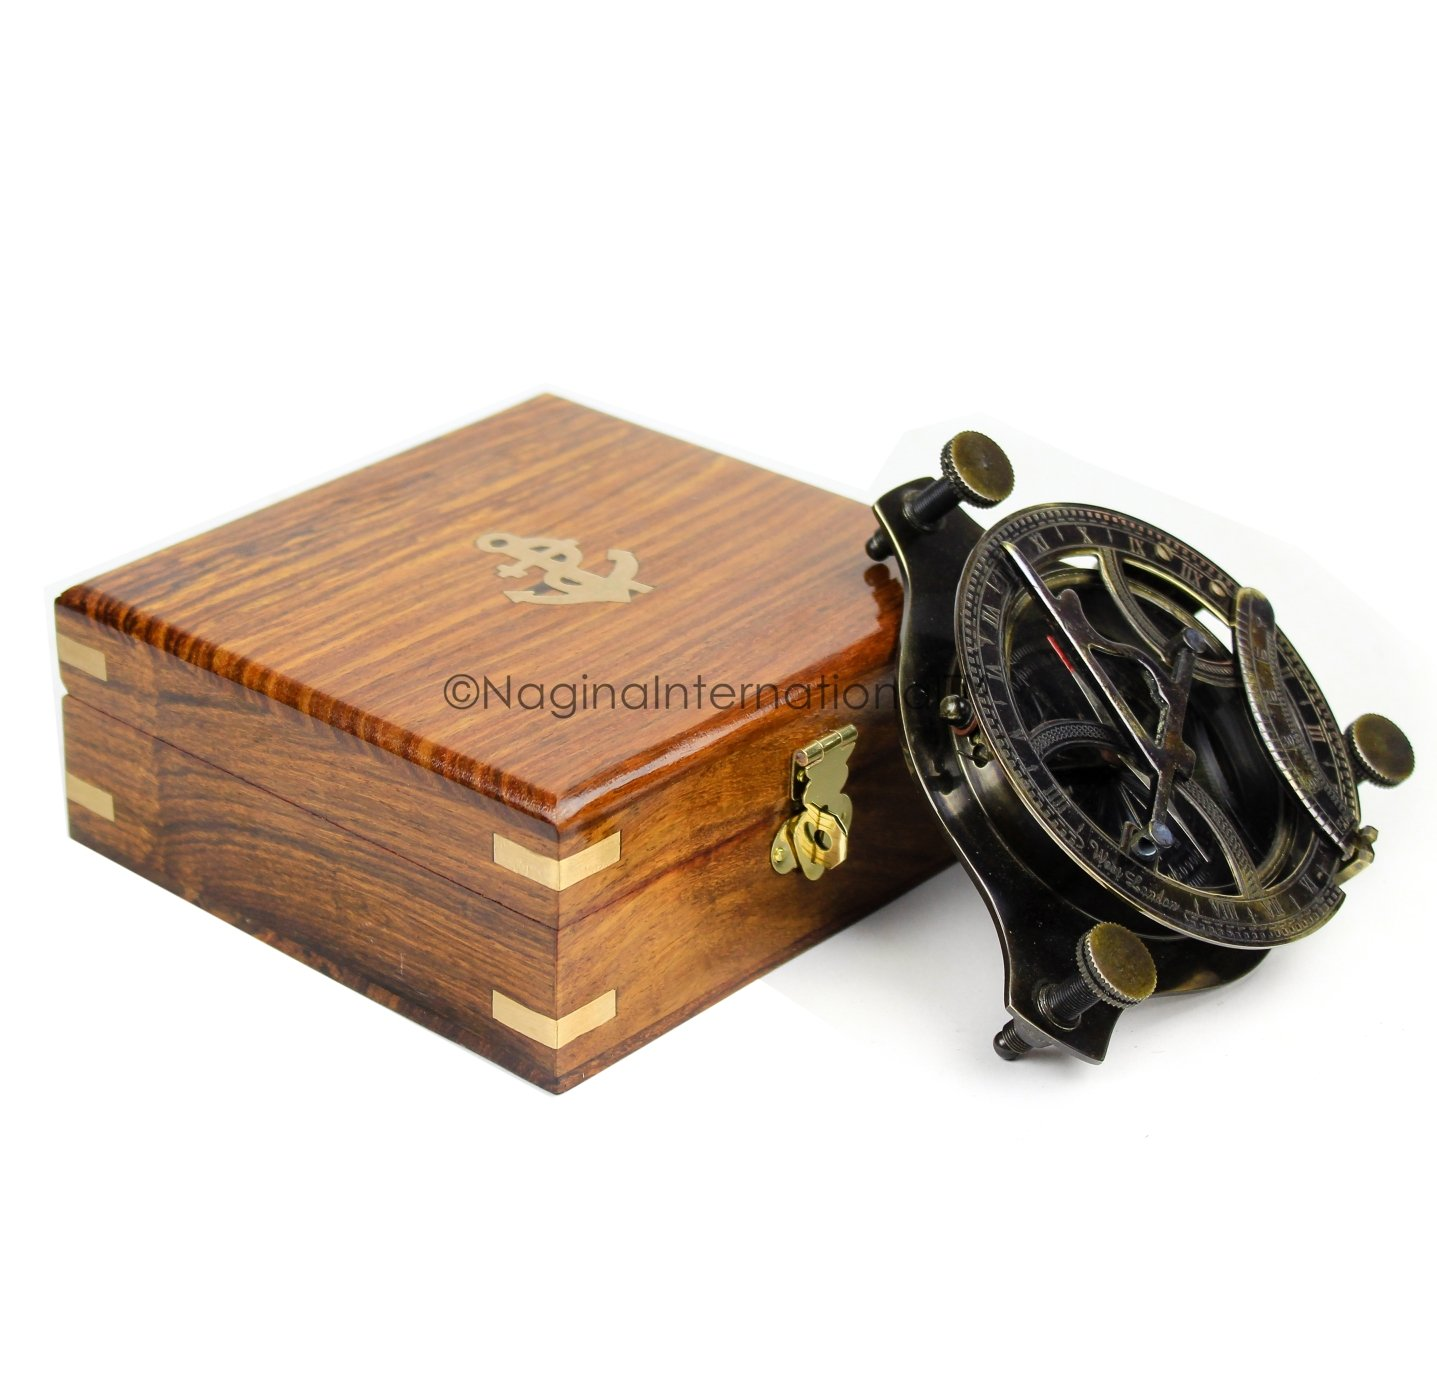 Nagina International 5'' Triangular Beautiful Nautical Sundial Compass With Level Meter Encased In Genuine Rosewood Anchor Inlaid Case | Maritime Decor Gifts (Antique Brass) by Nagina International